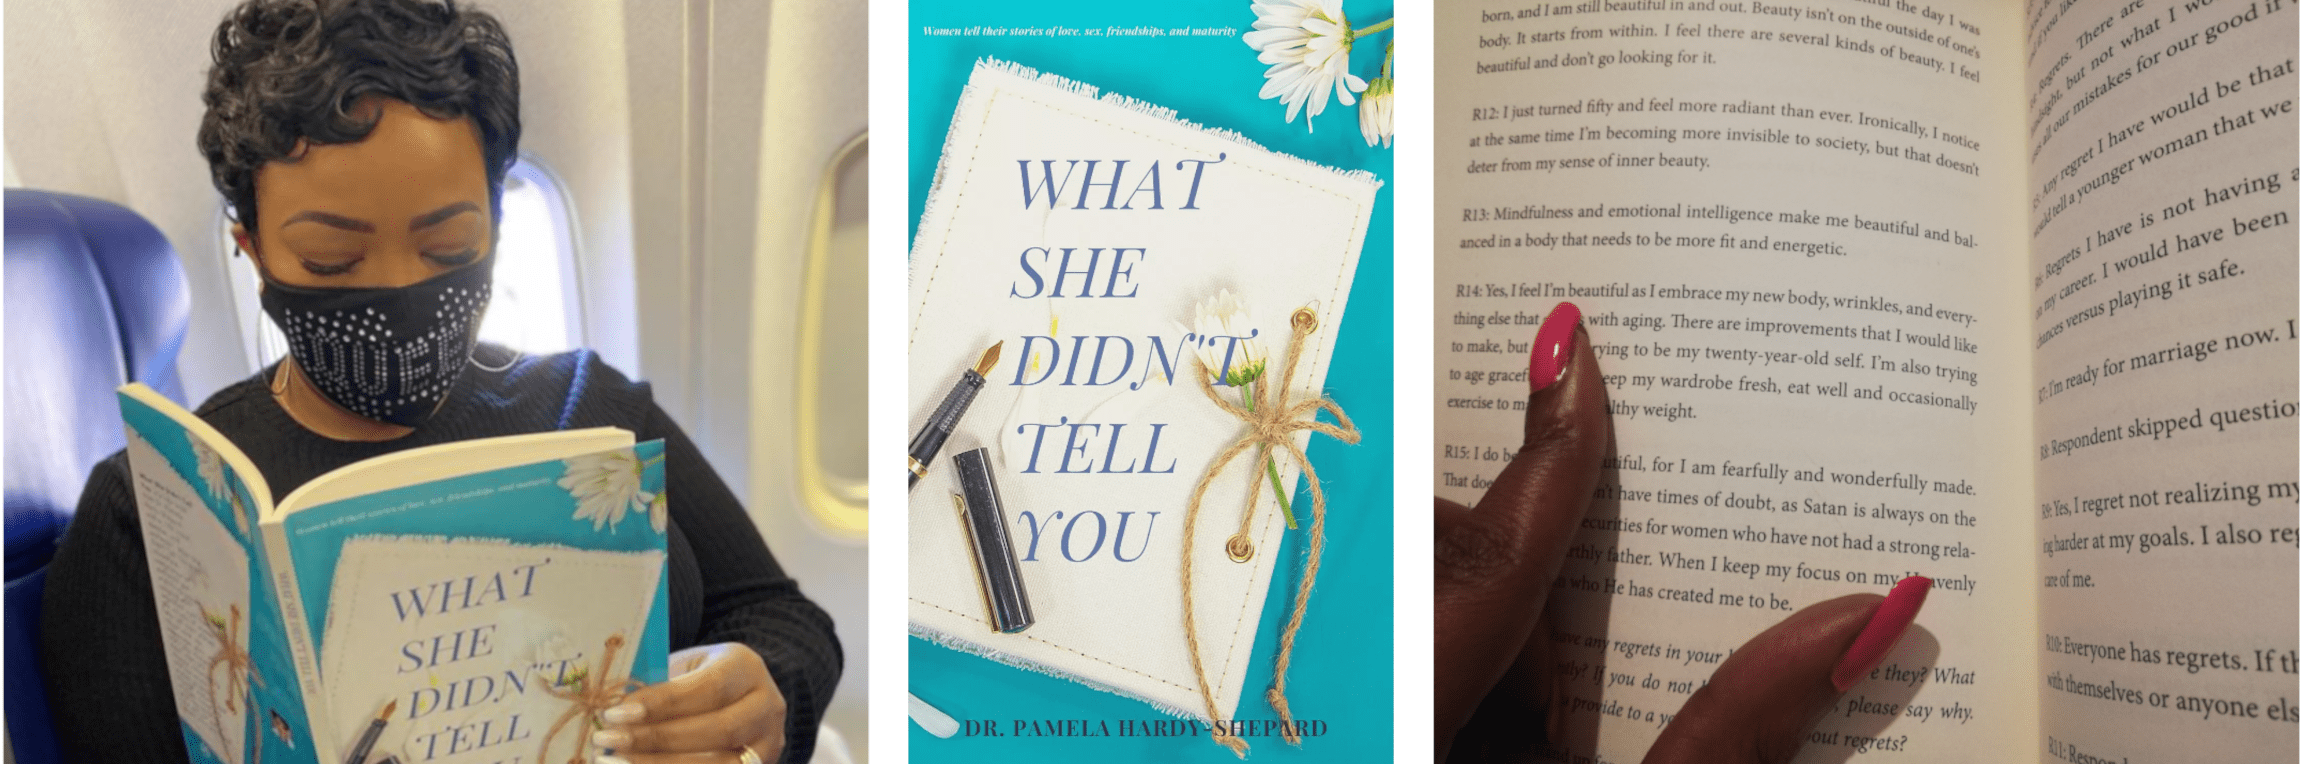 what she didn't tell you dr pamela hardy shepard book goodreads review